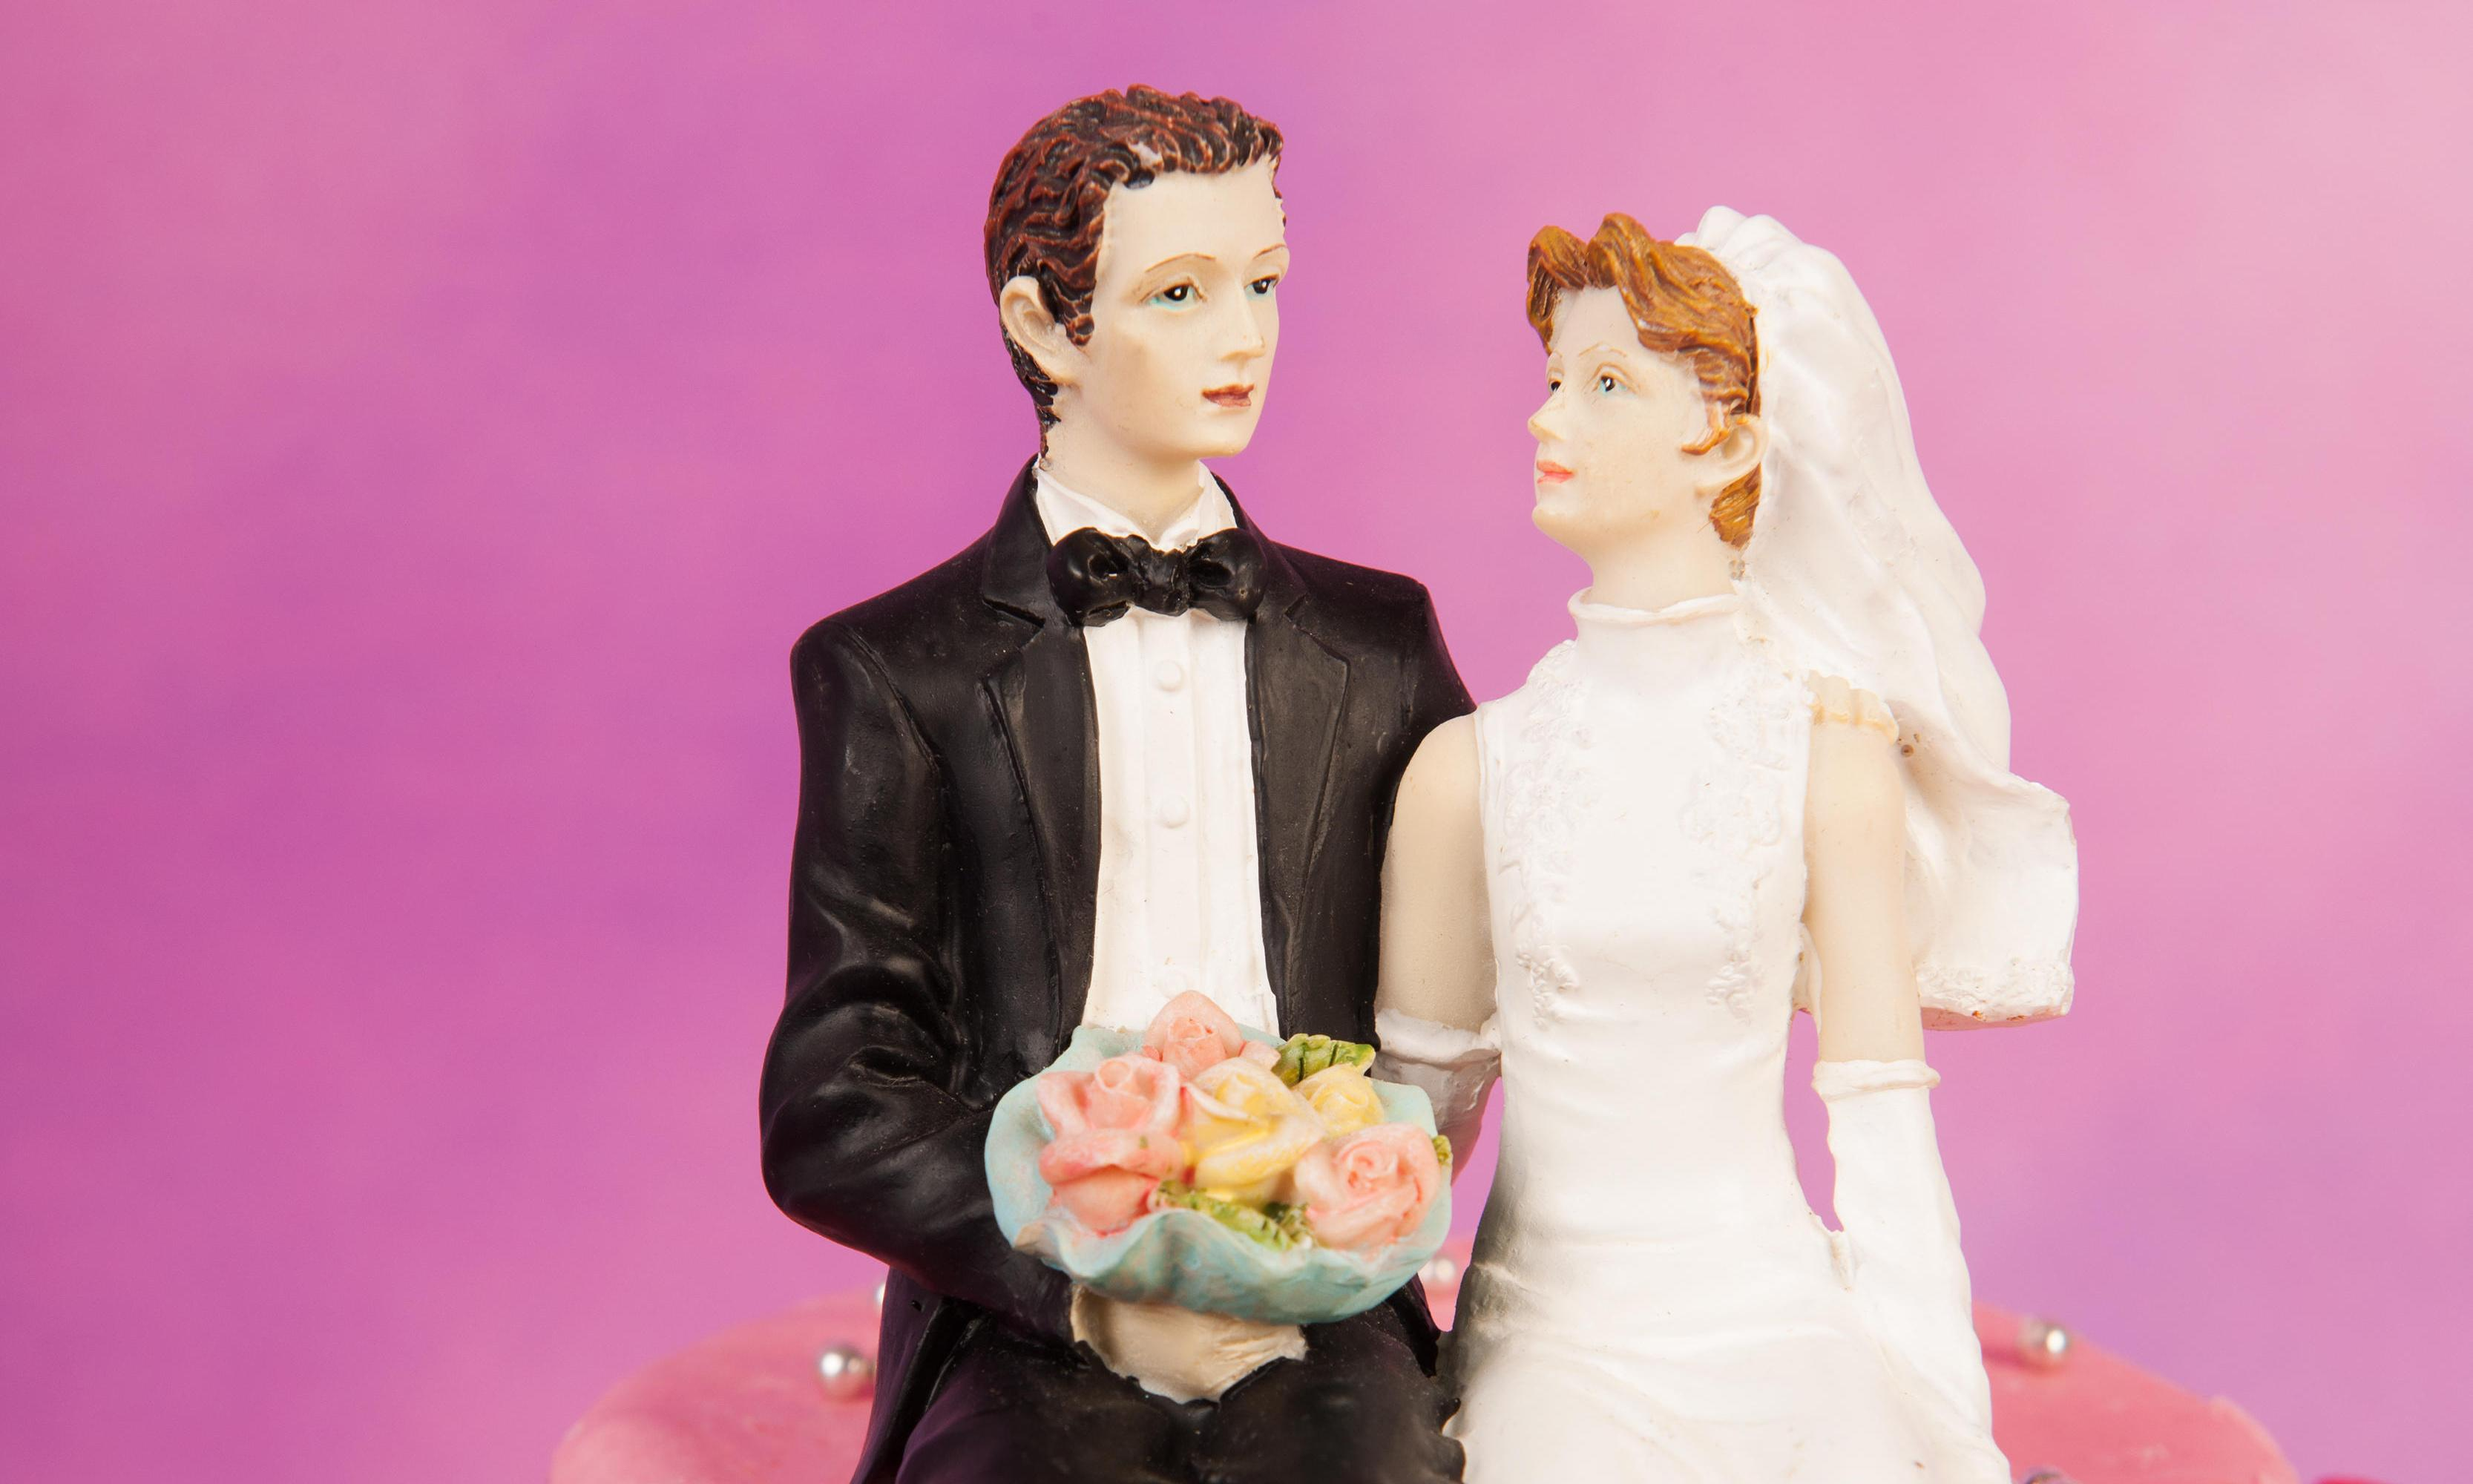 Singled out: why can't we believe unmarried, childless women are happy?